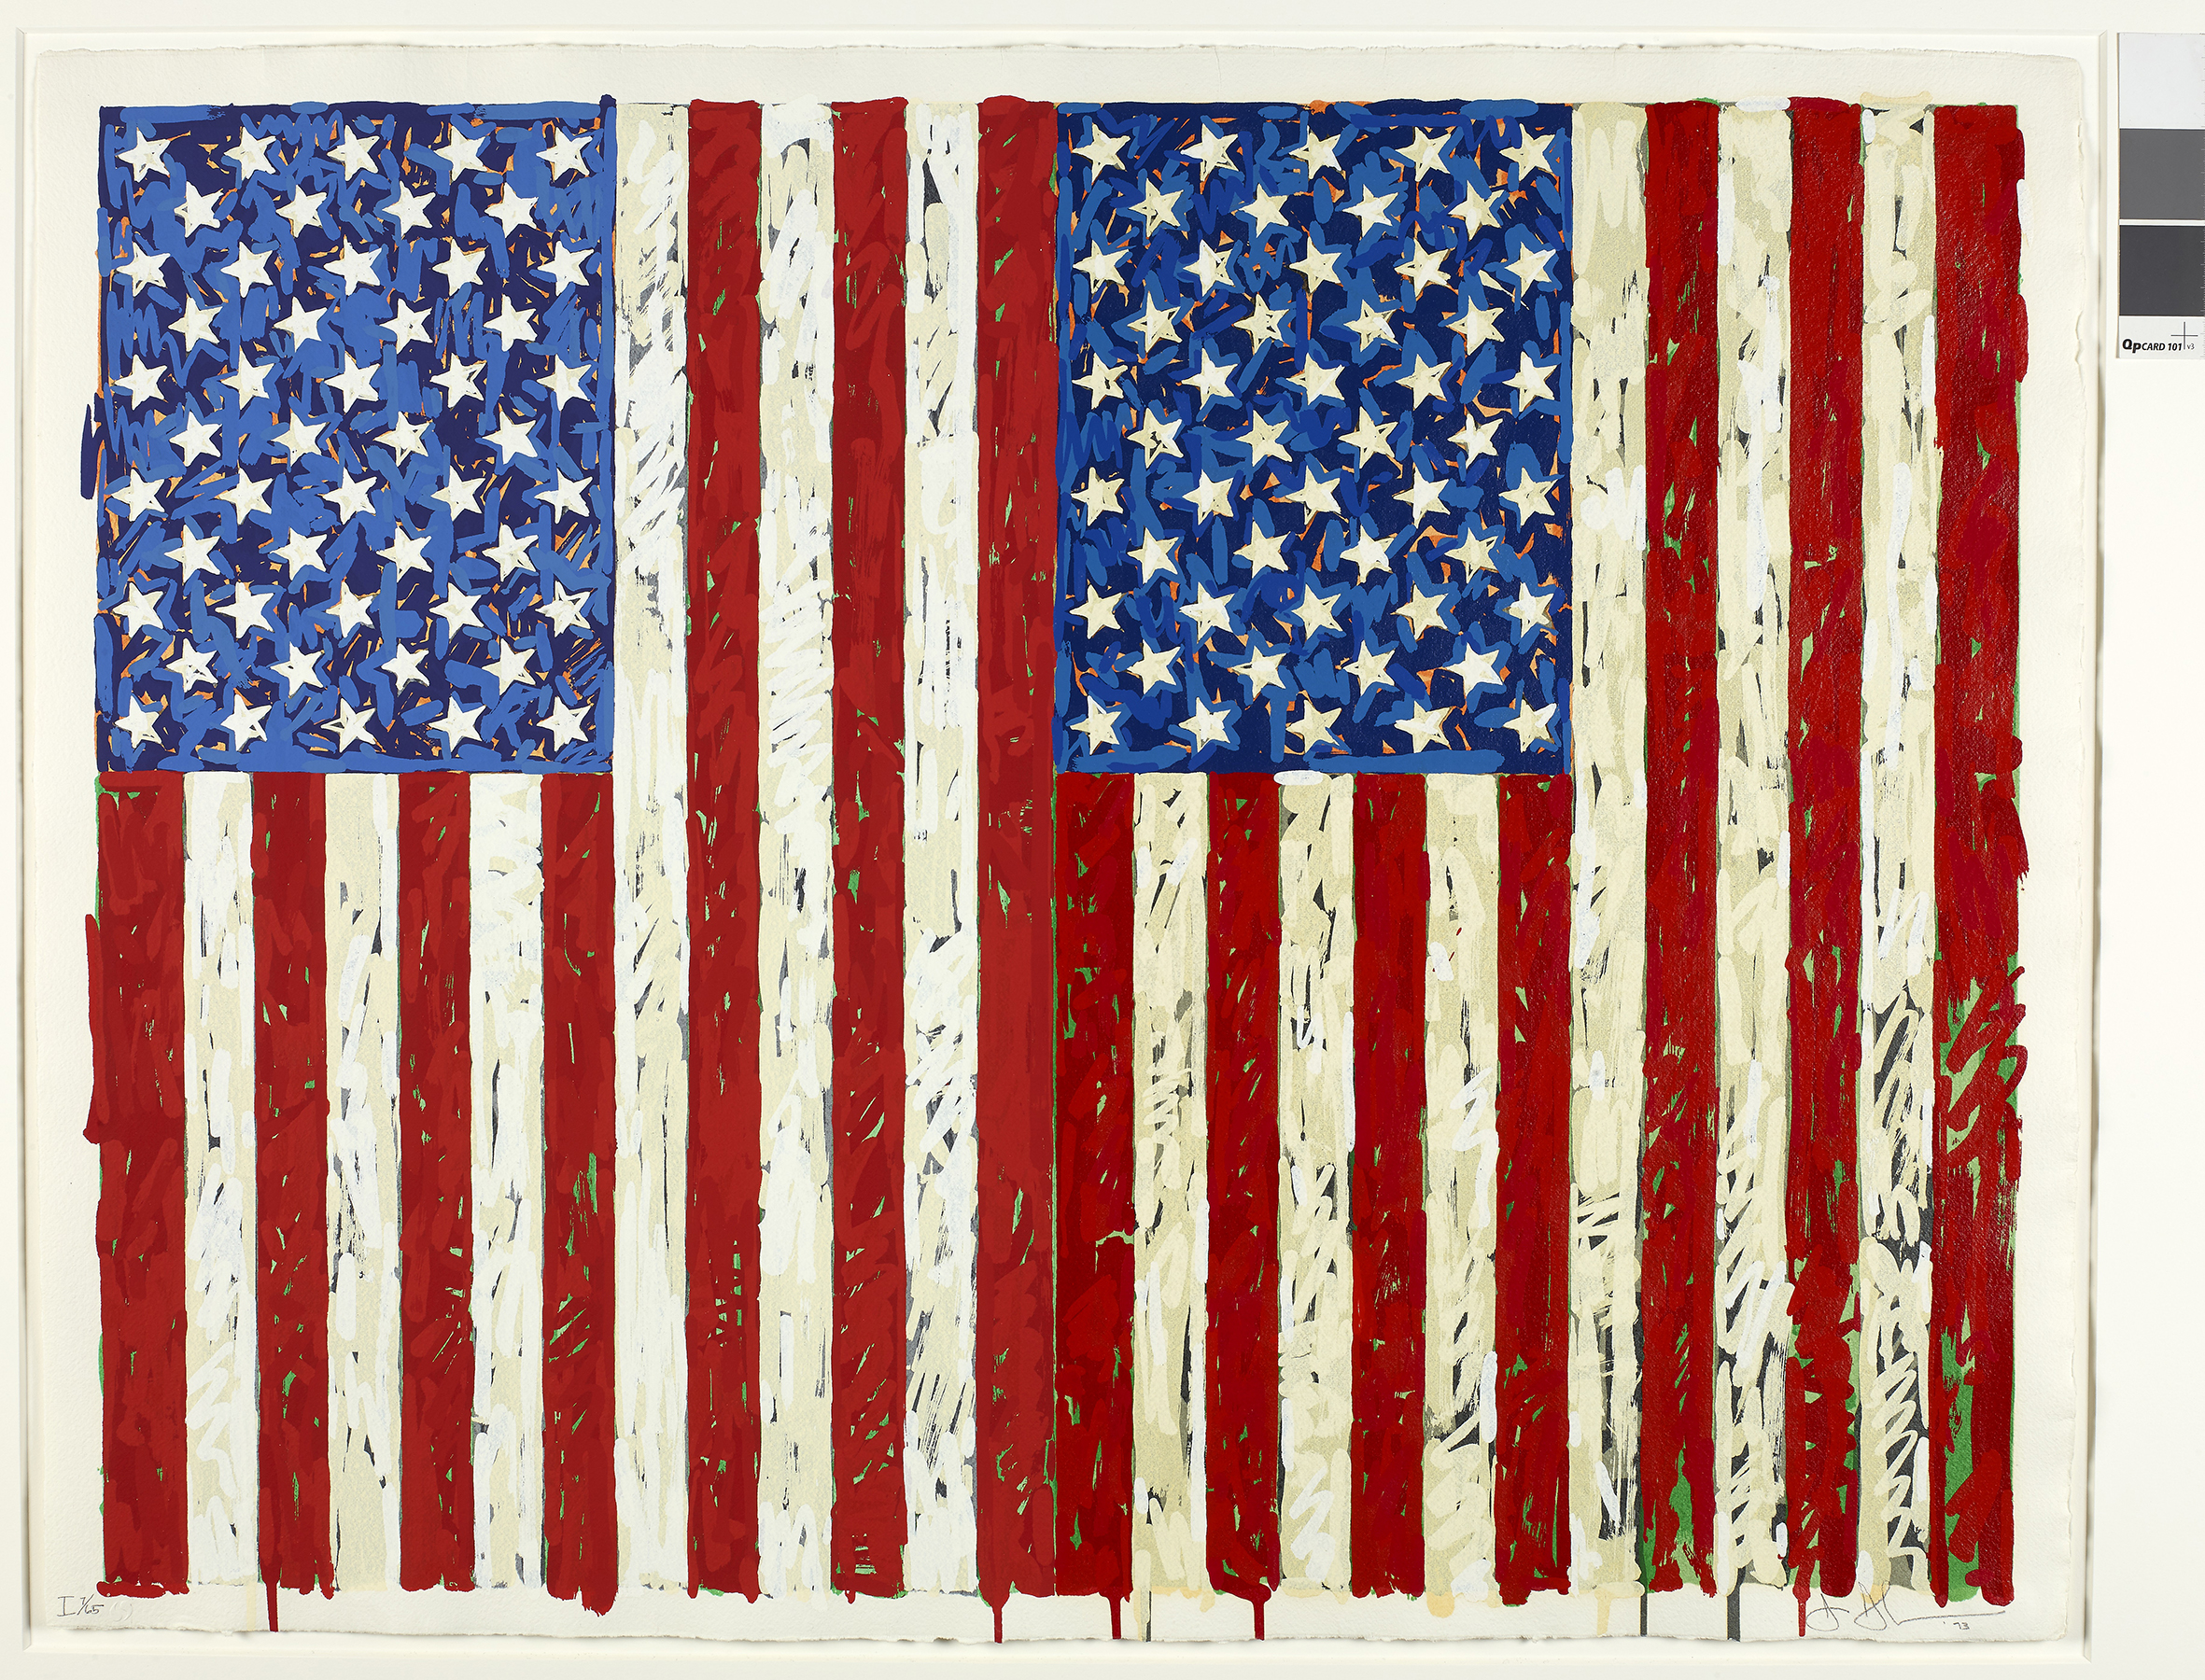 This Jasper Johns work, Flags I, has been acquired by the British Museum, London